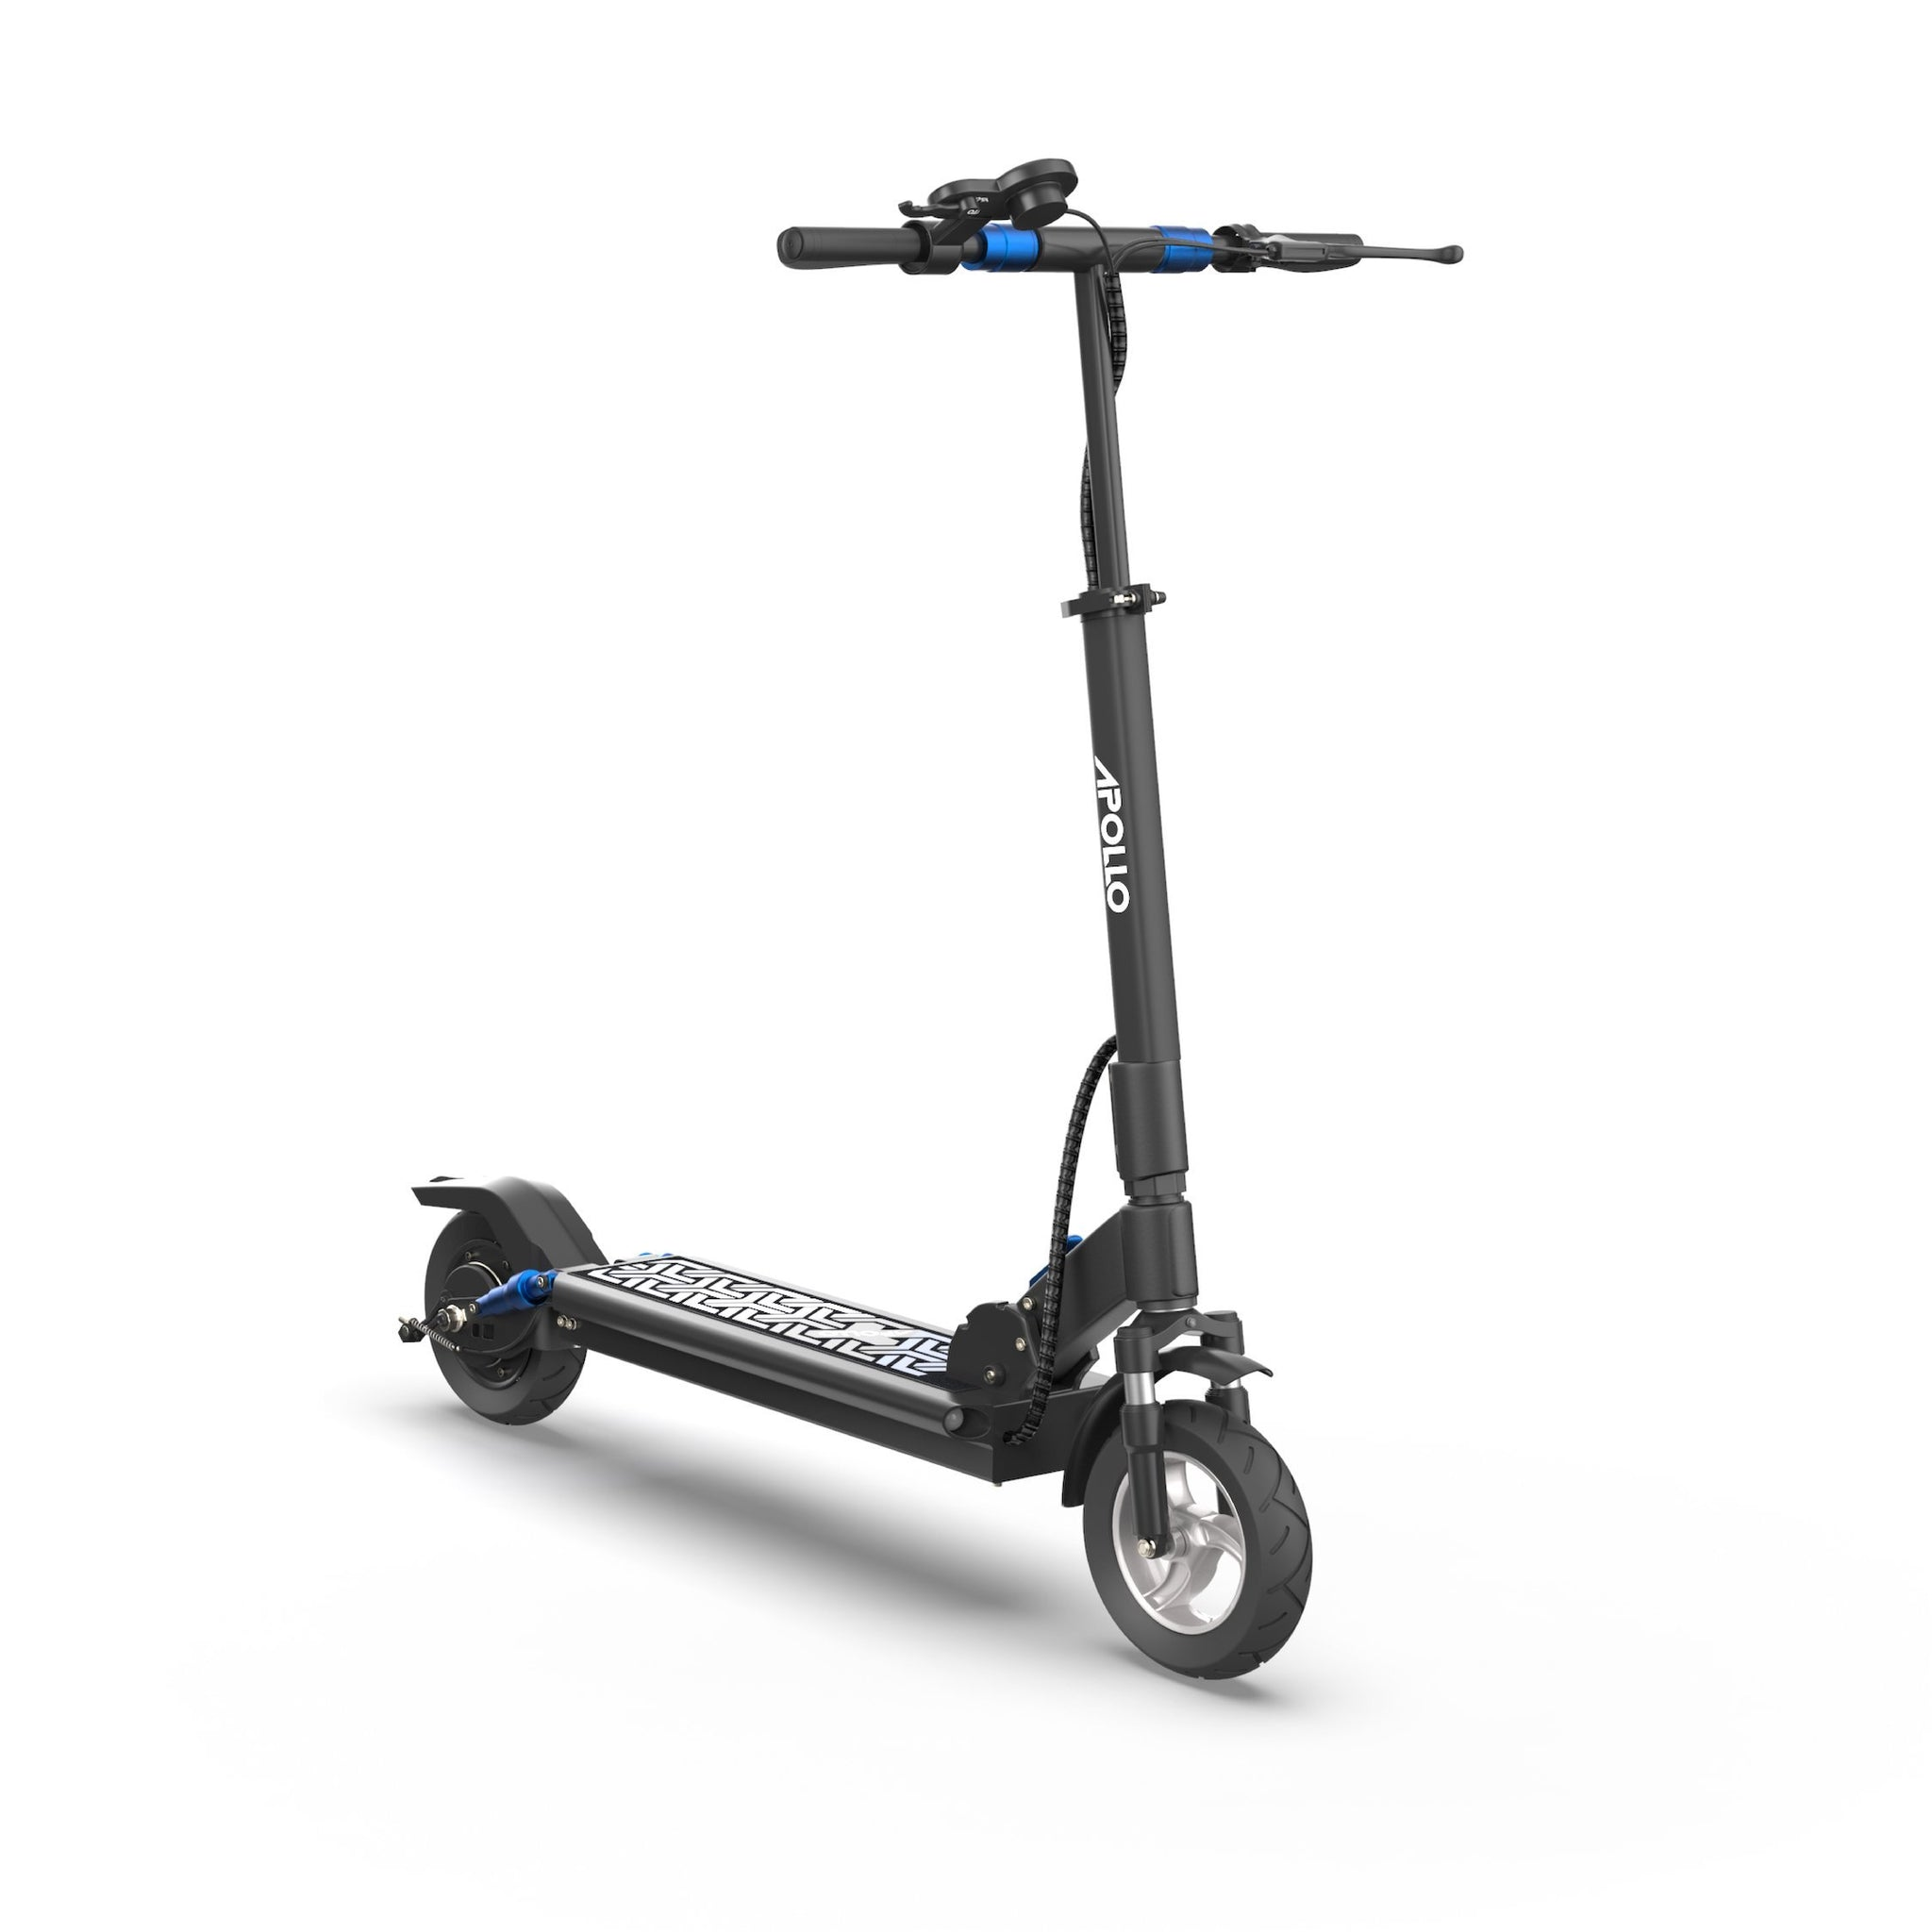 Apollo Light - electric scooter - Apollo Scooters